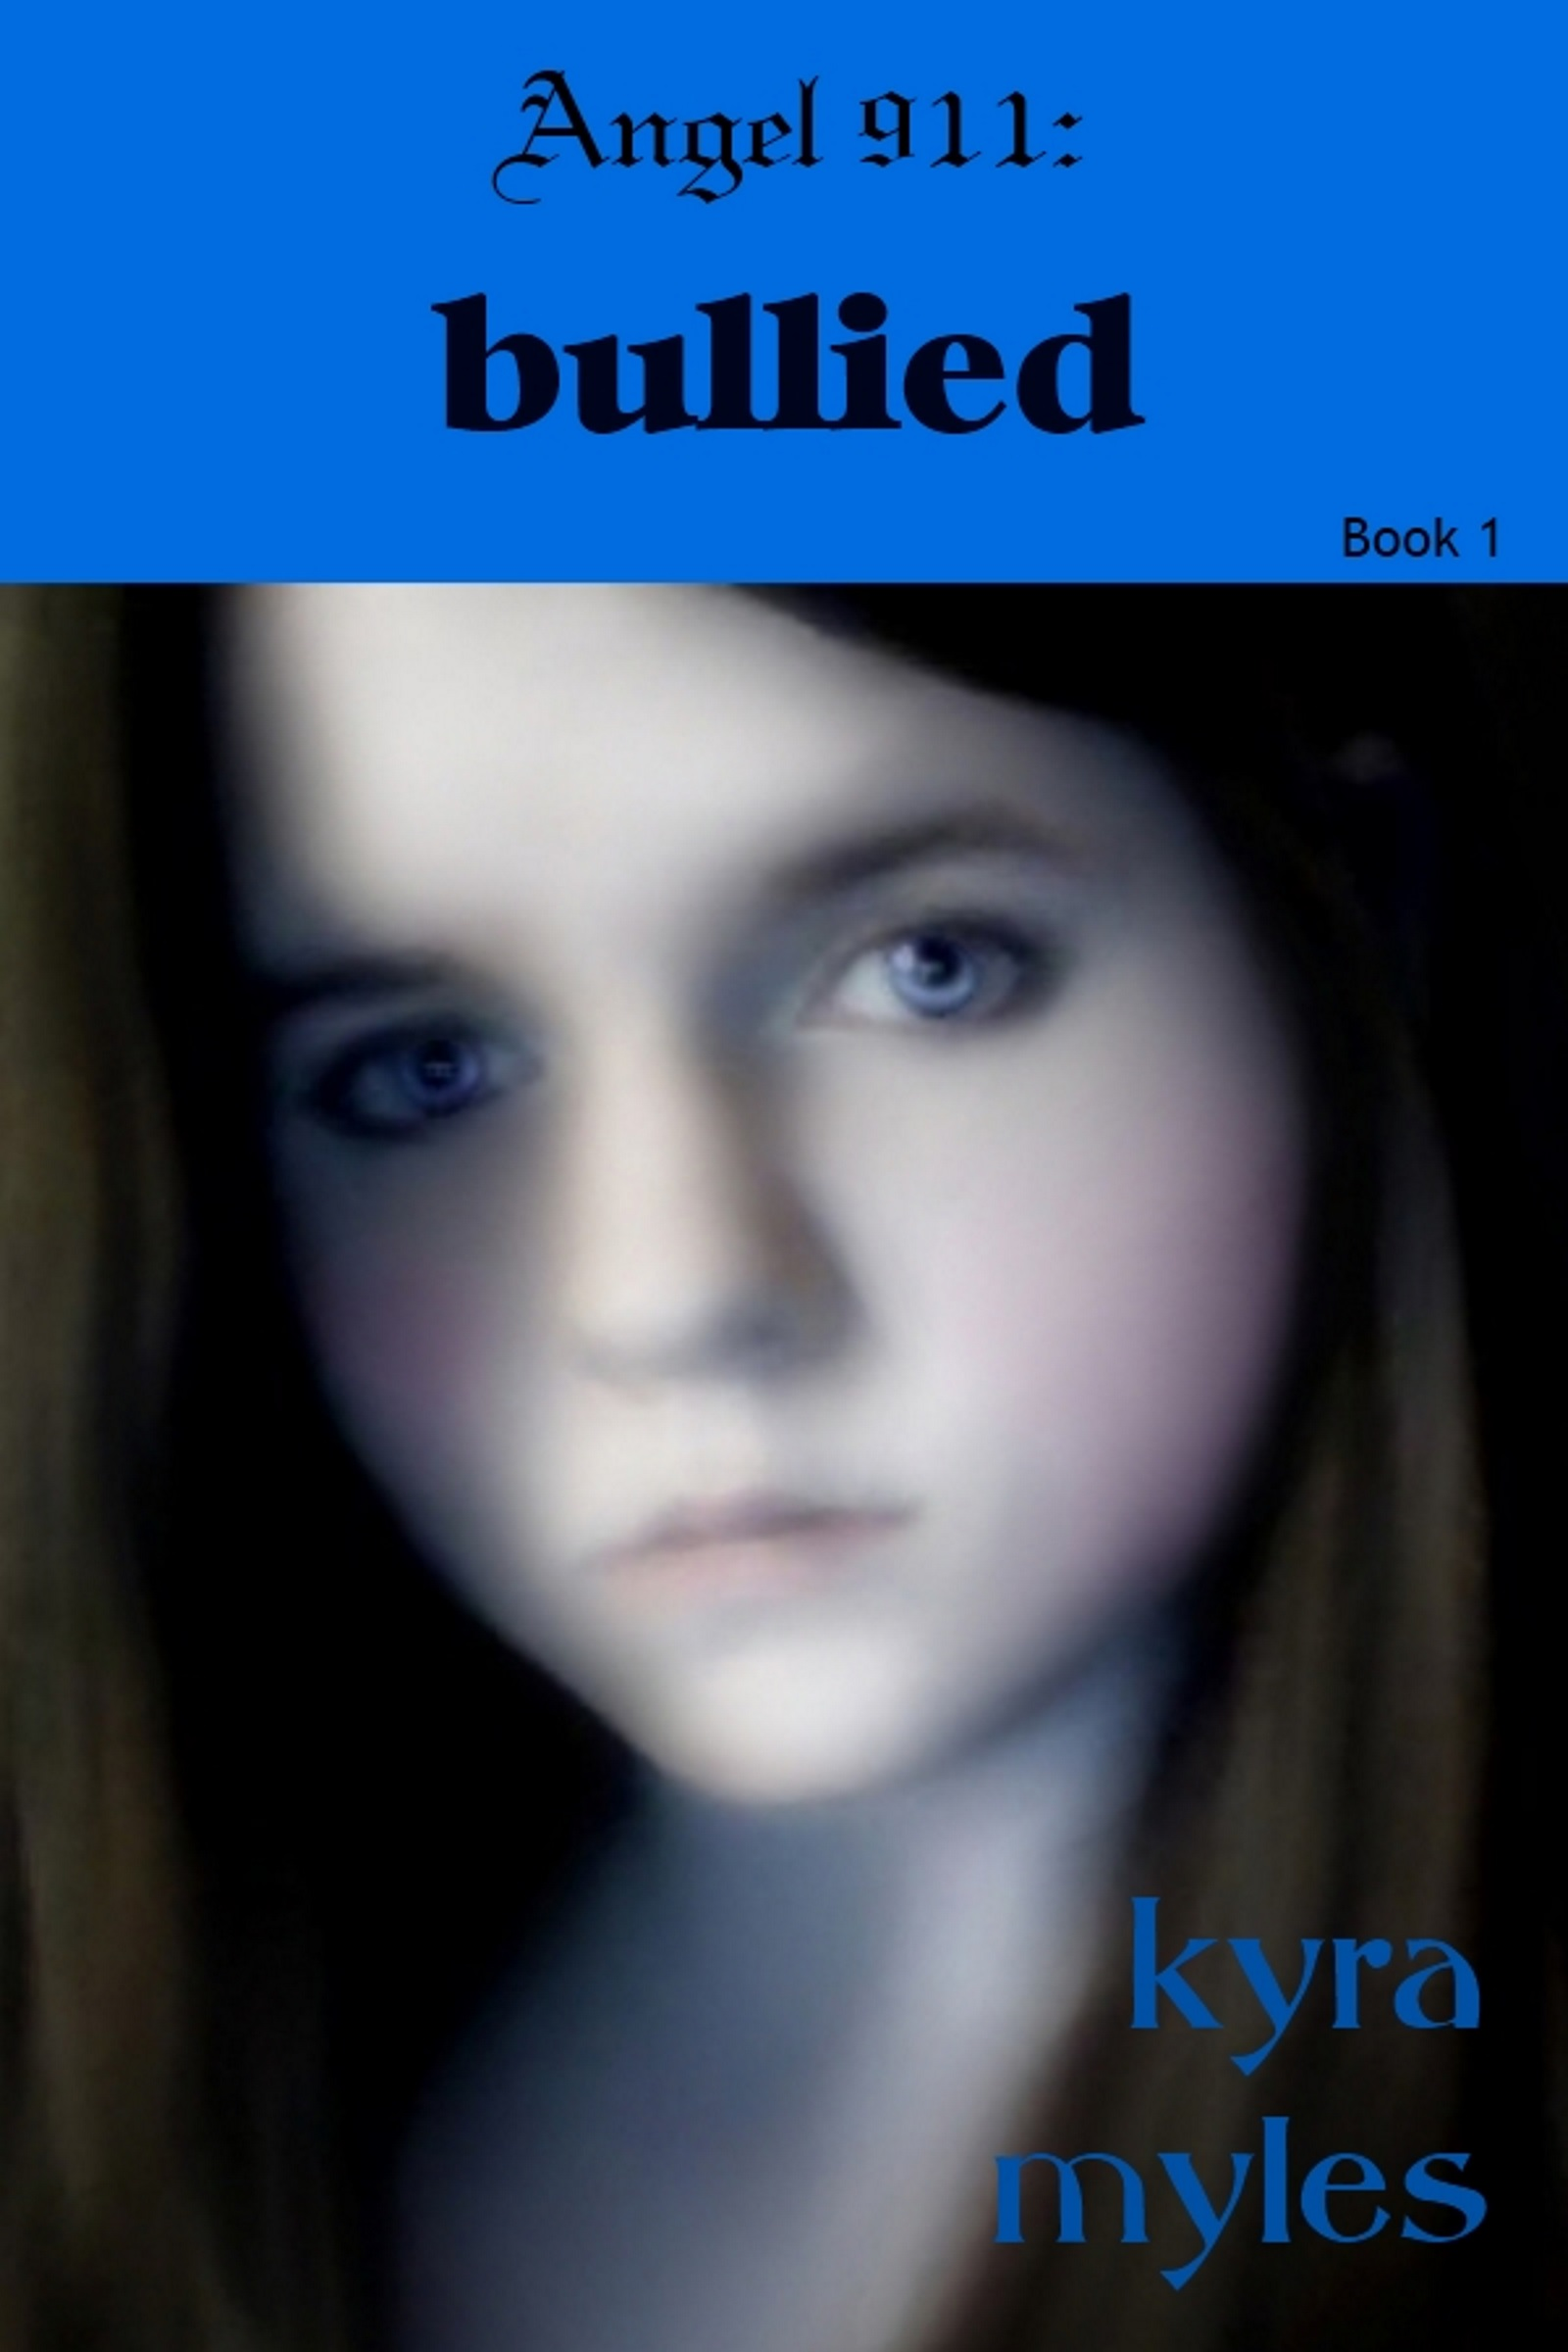 Angel 911: bullied book cover